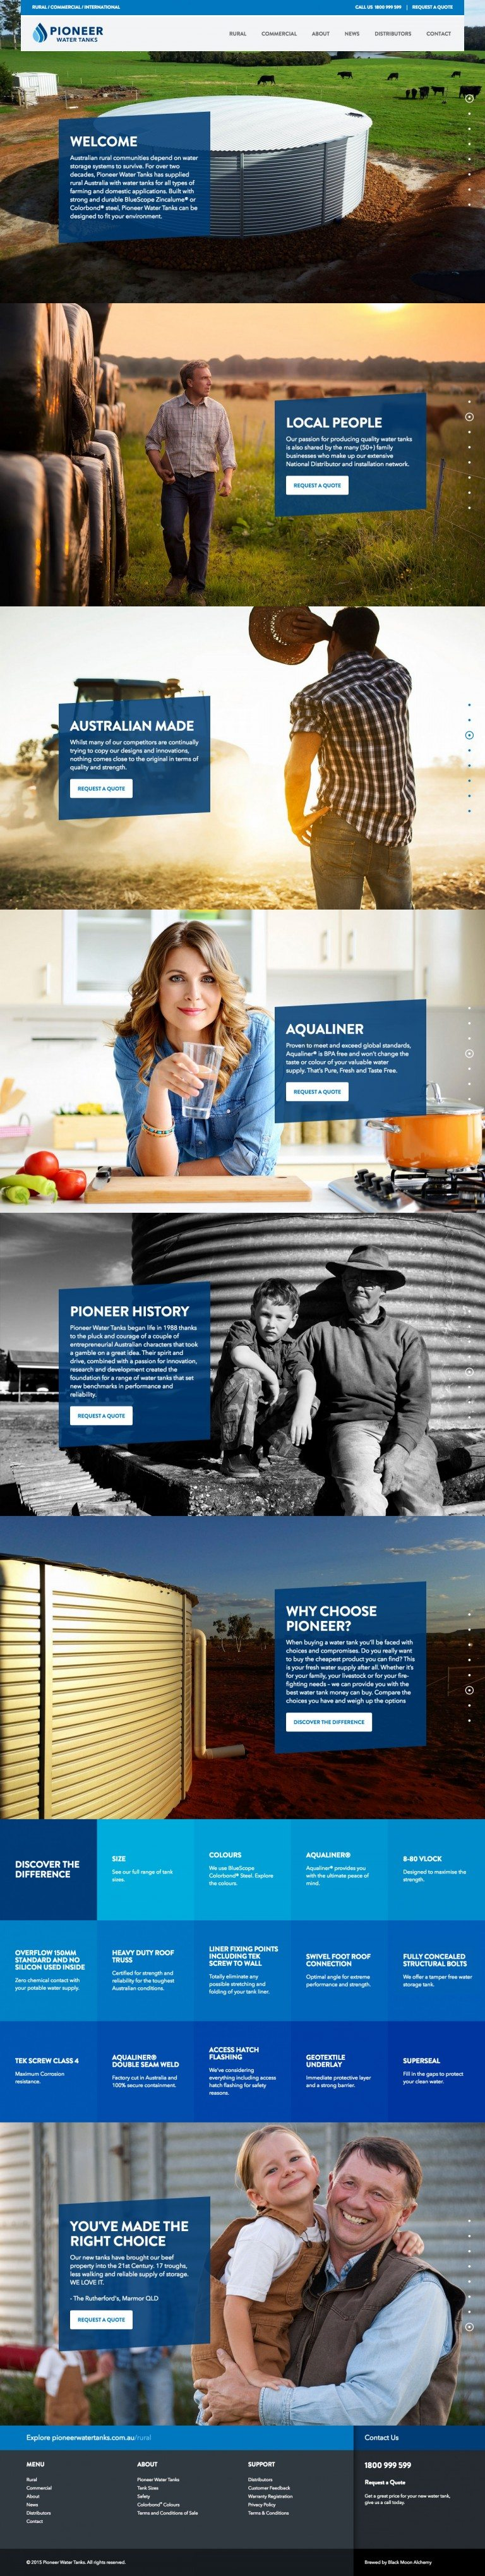 Pioneer Water Tanks Website Homepage